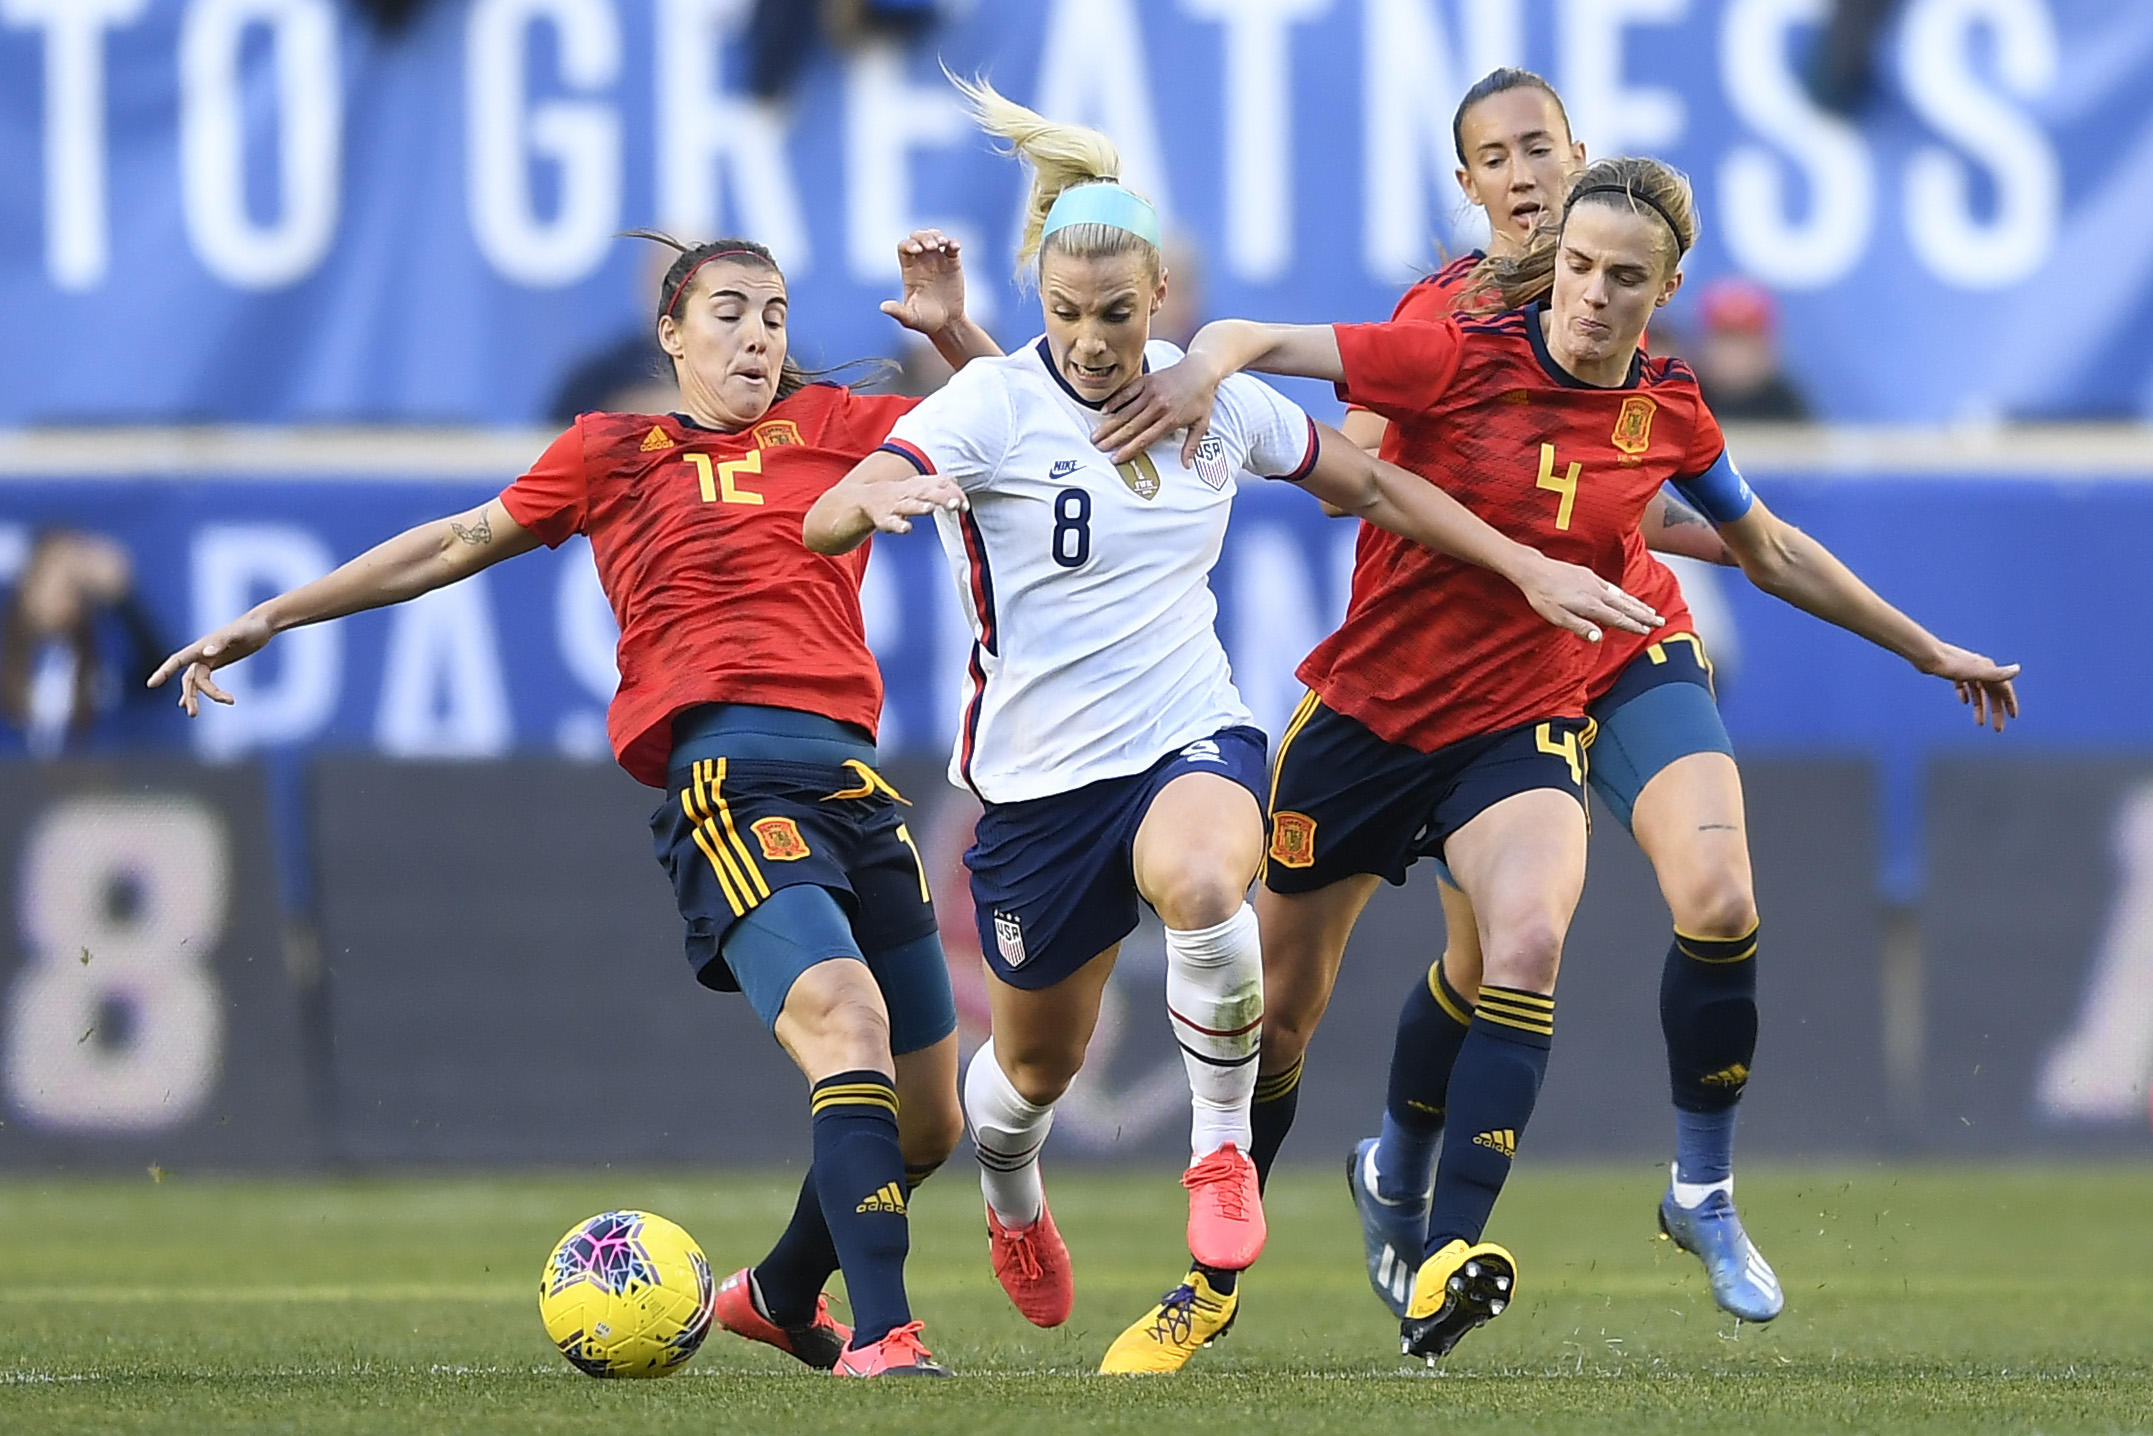 2020 SheBelieves Cup - United States v Spain